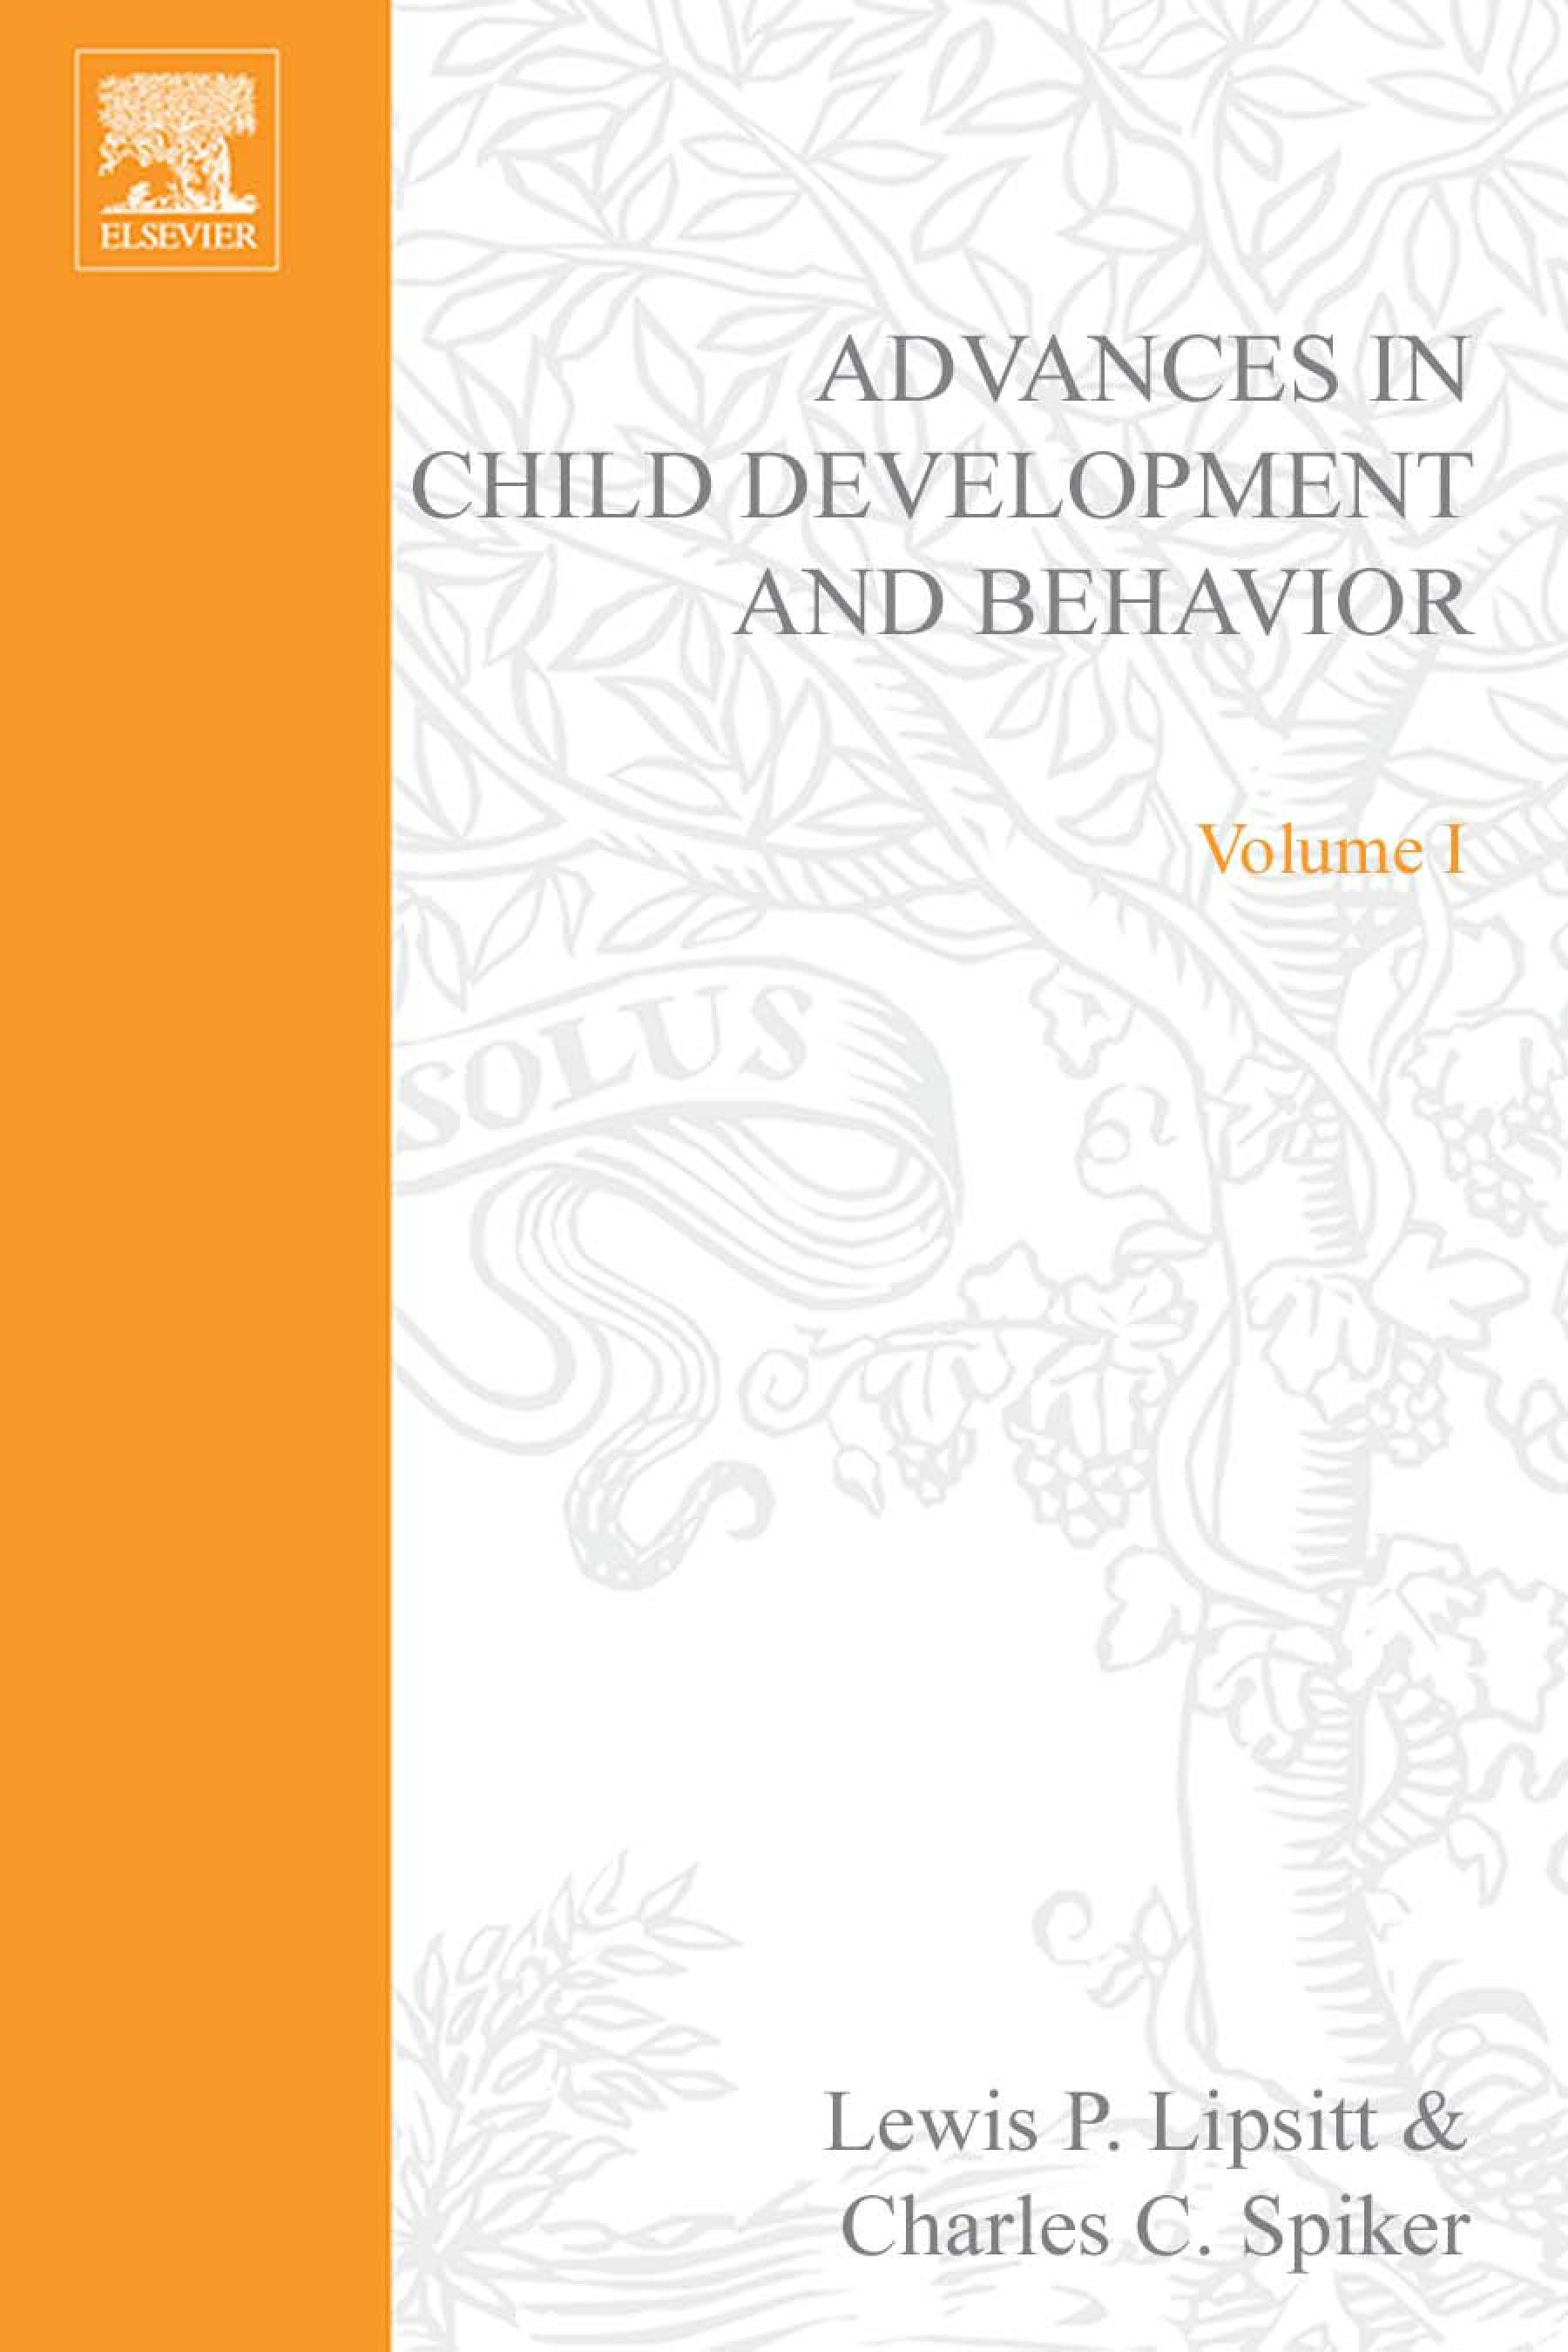 ADV IN CHILD DEVELOPMENT &BEHAVIOR V 1